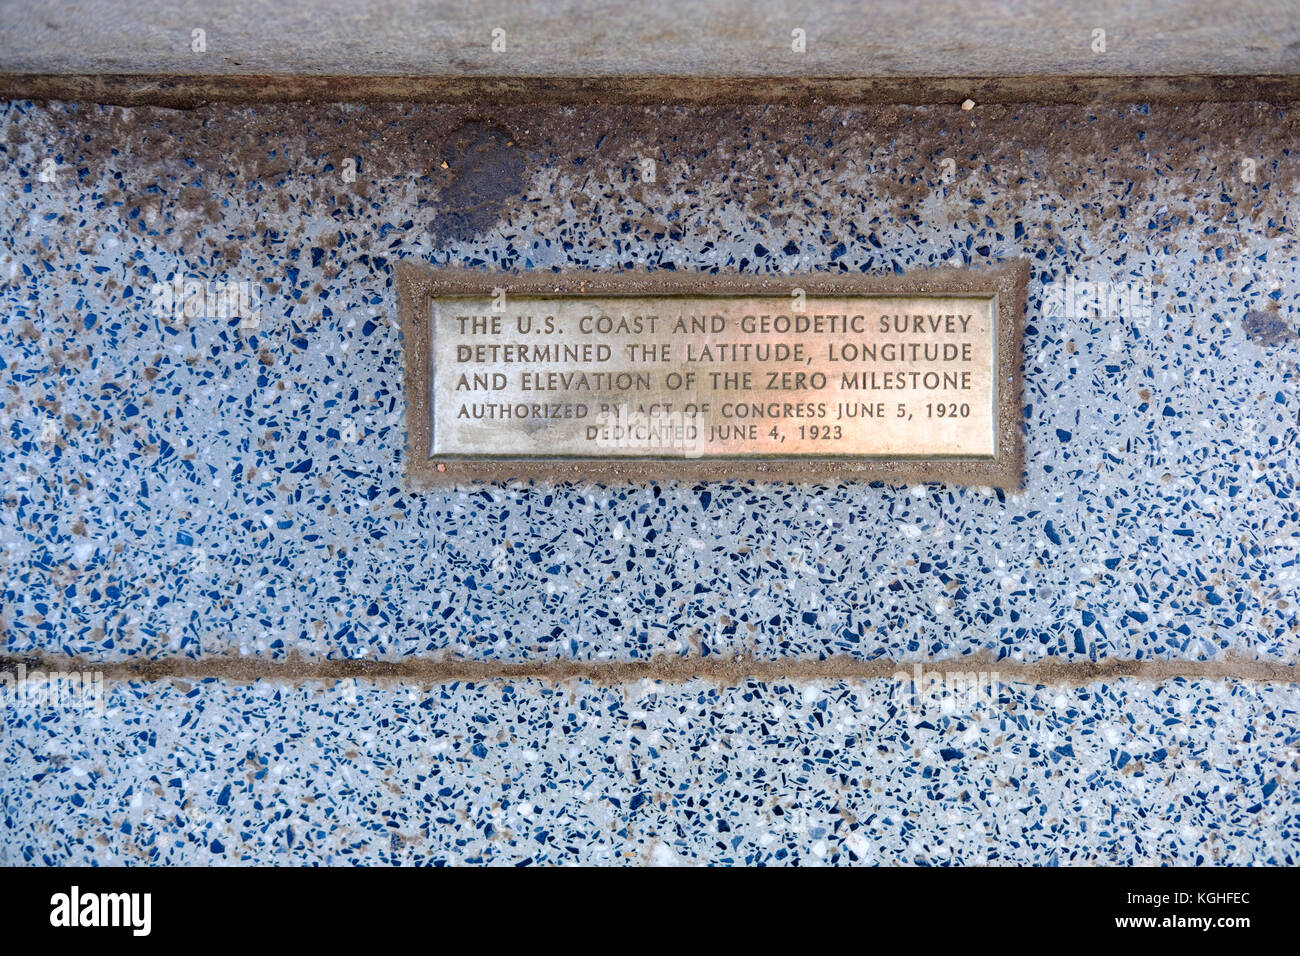 Brass plate inscription at the base of the Zero Milestone Monument in Washington, DC, United States of America, - Stock Image